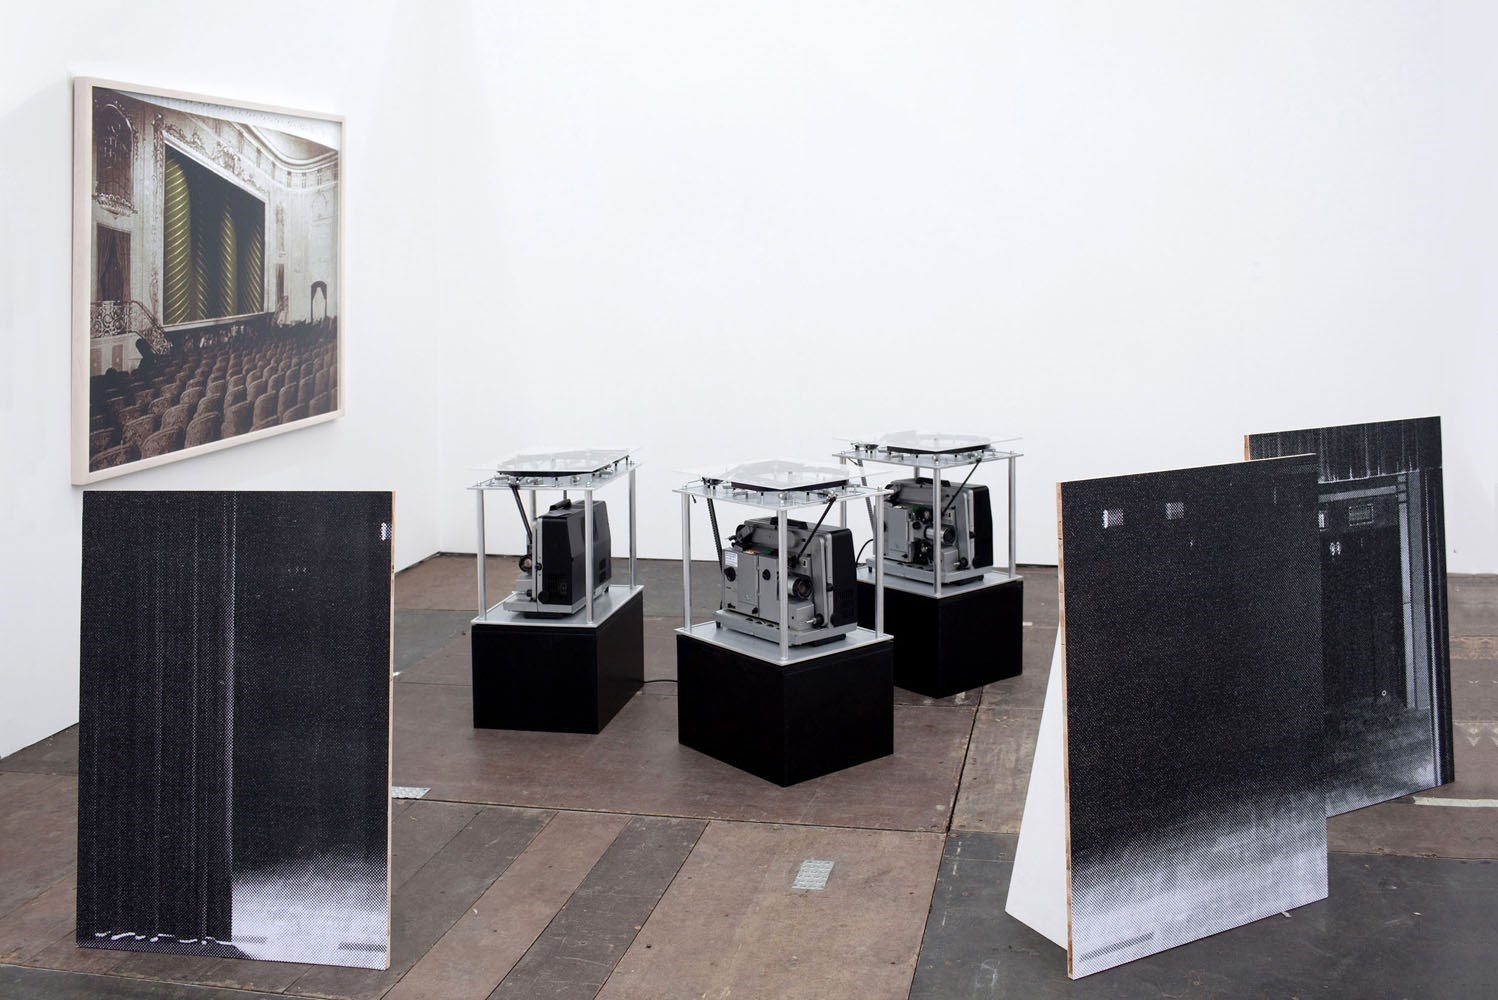 Leere Bühne, 3 x 110 cm x 70 cm, black & white prints, wood, 2009<br />Installation view Sassa Trülzsch, Frieze Art Fair, Frame, London